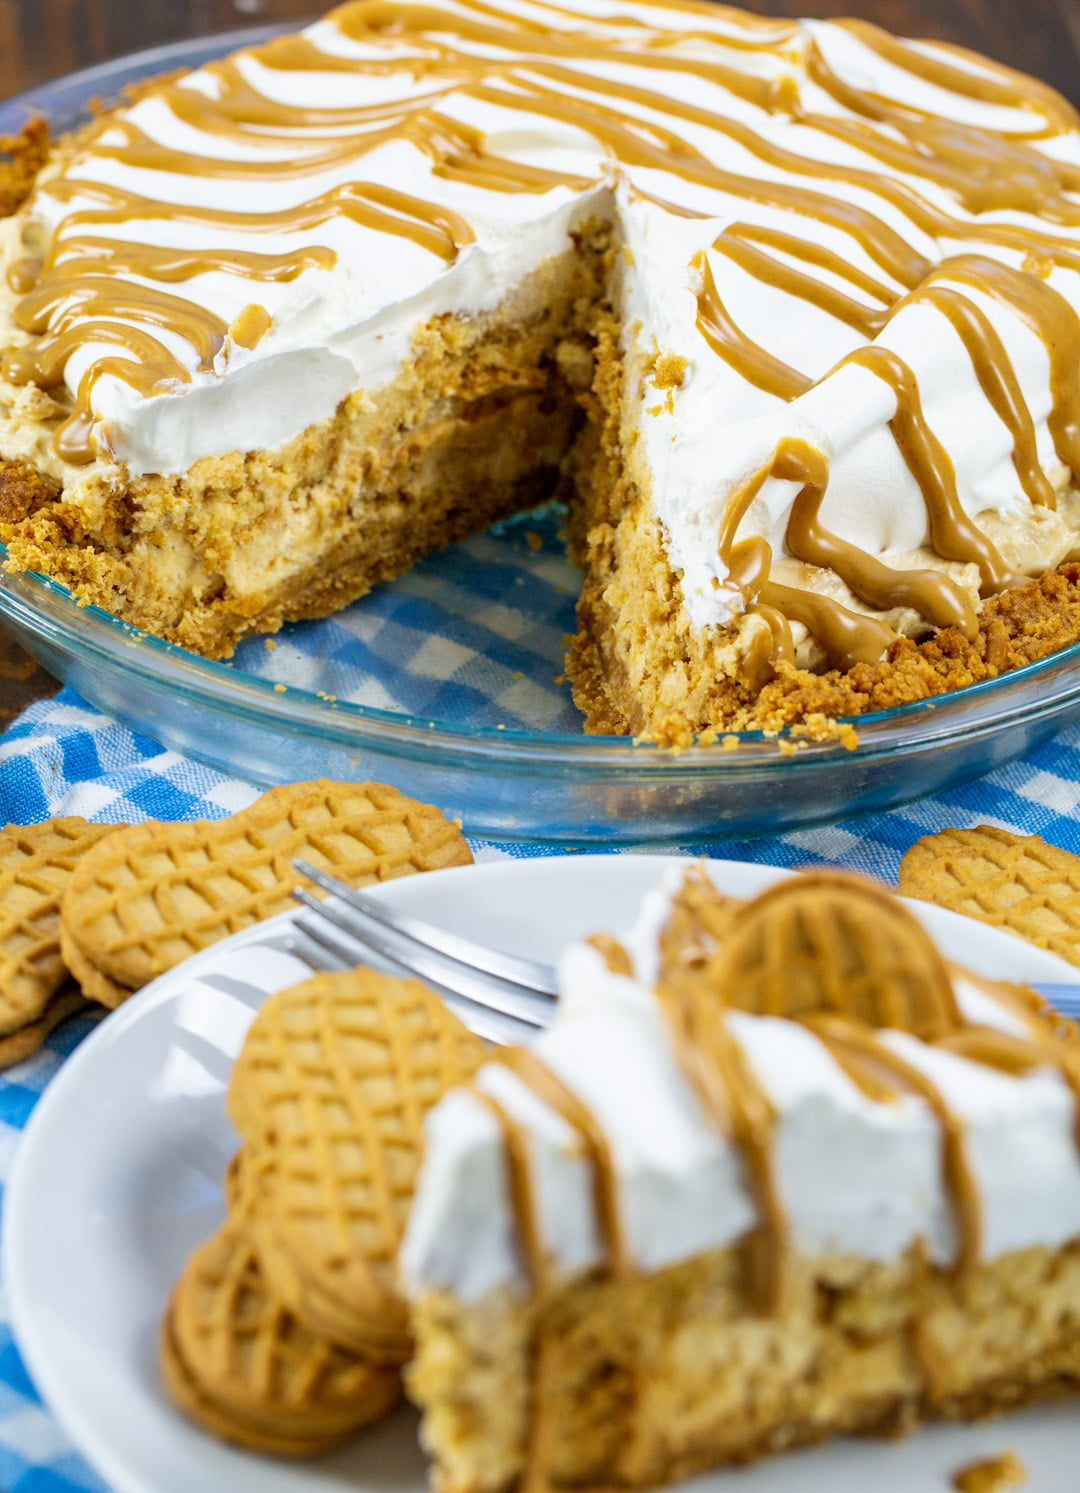 Nutter Butter Pie with a slice cut out.